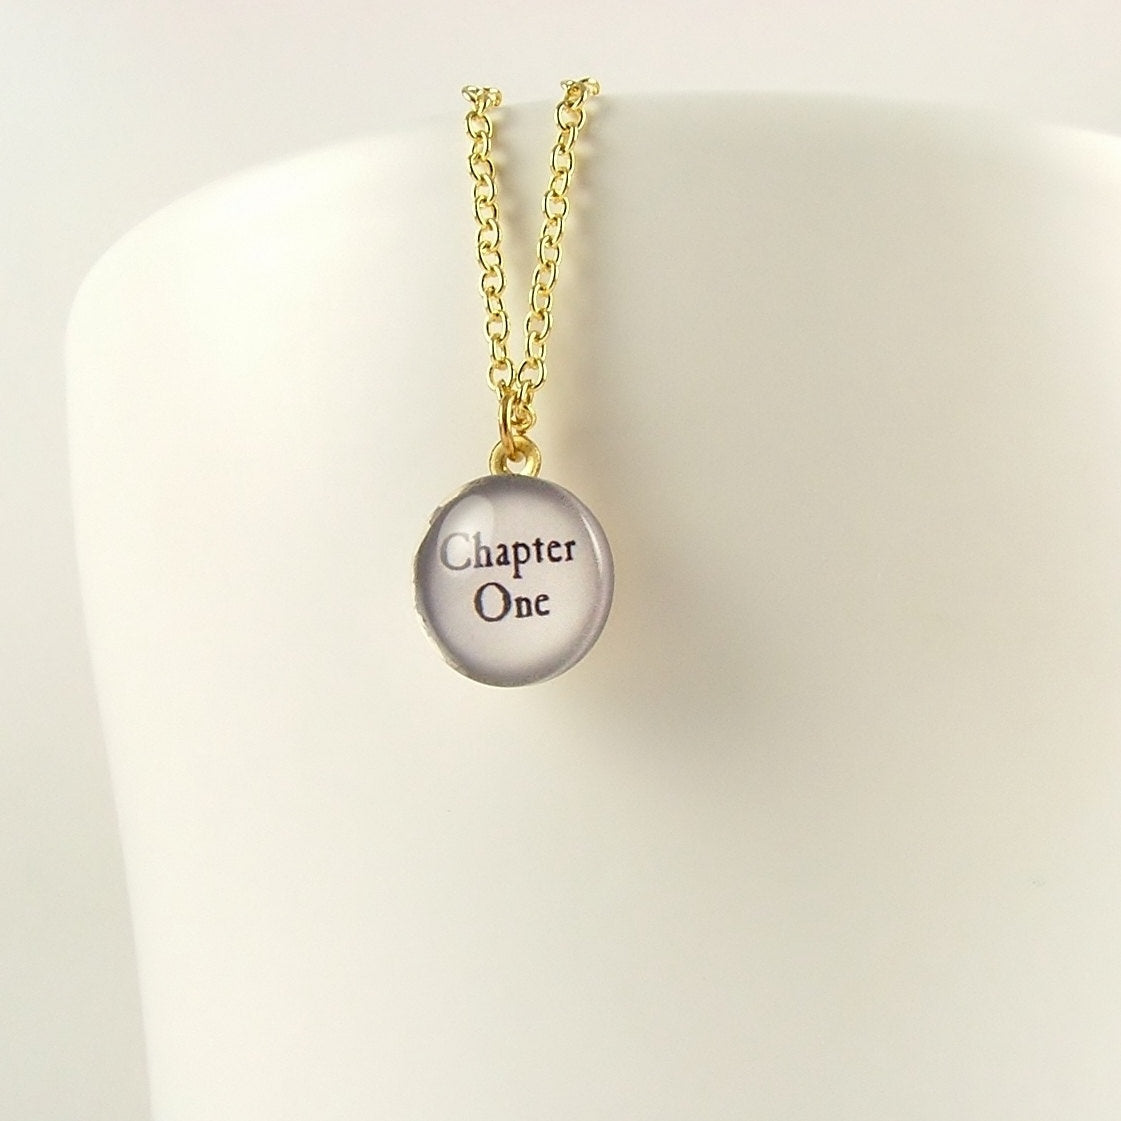 Chapter One Necklace